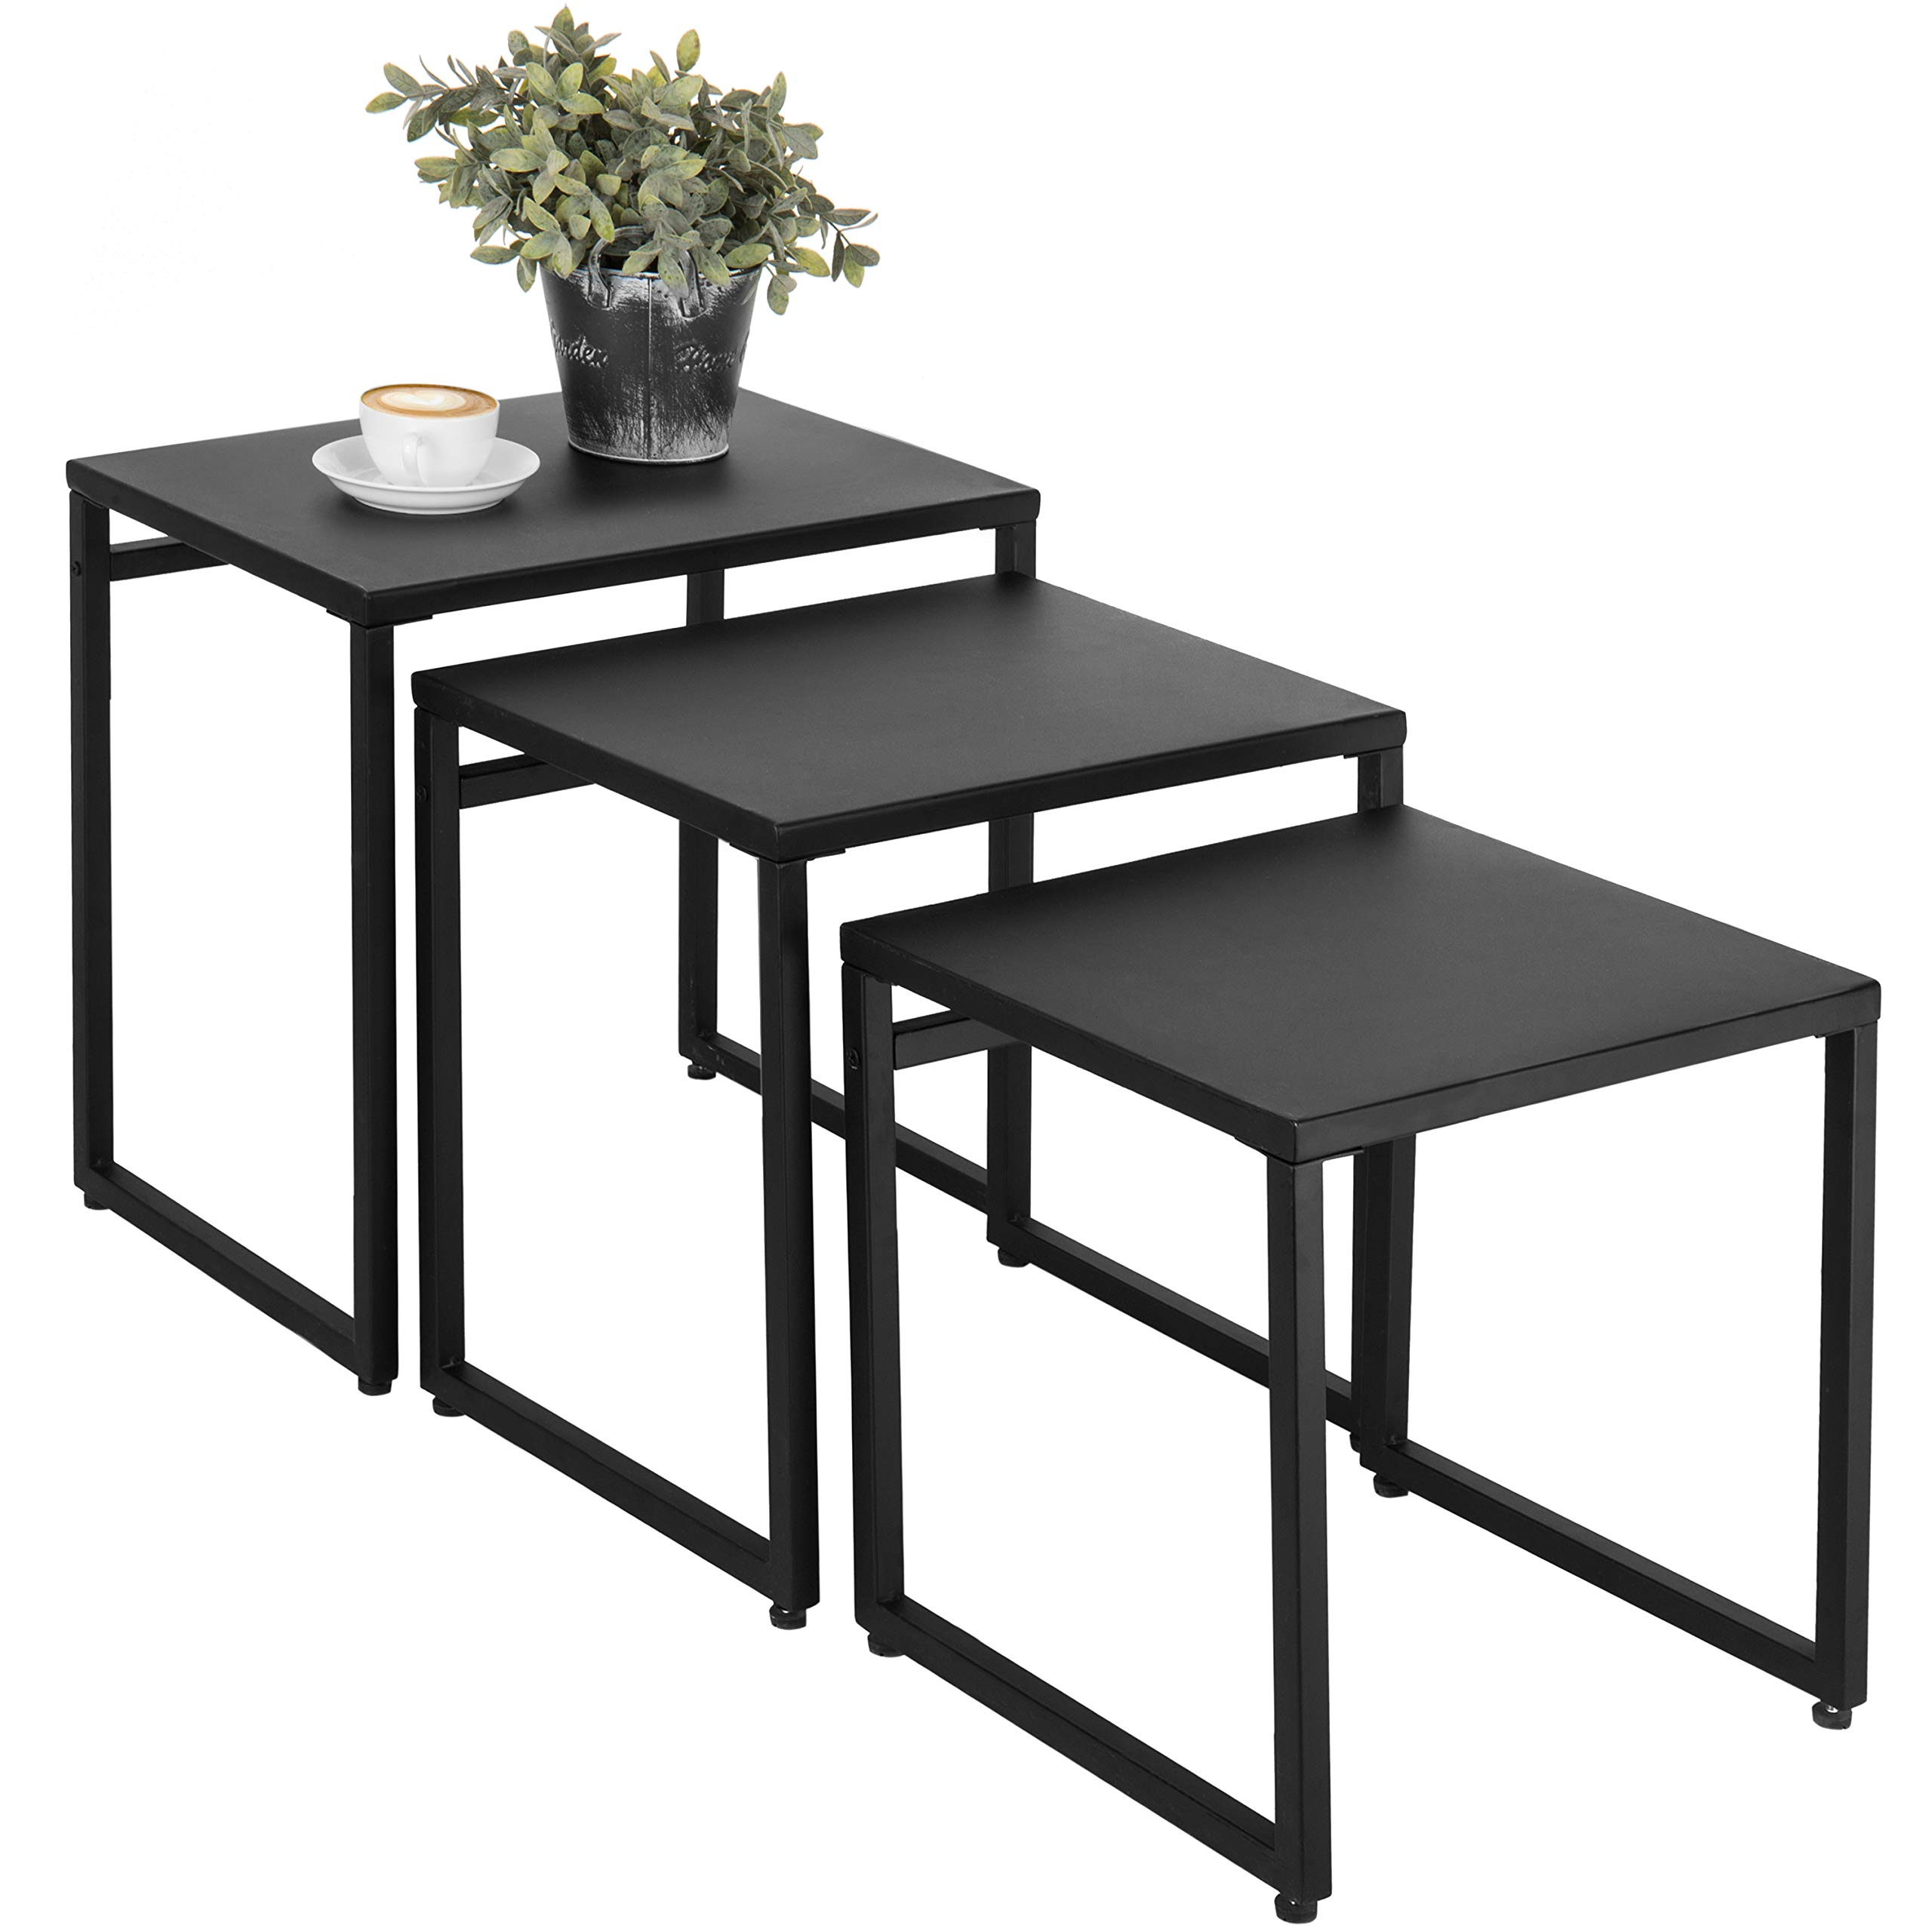 MyGift Set of 3 Black Metal Nesting End Tables by MyGift